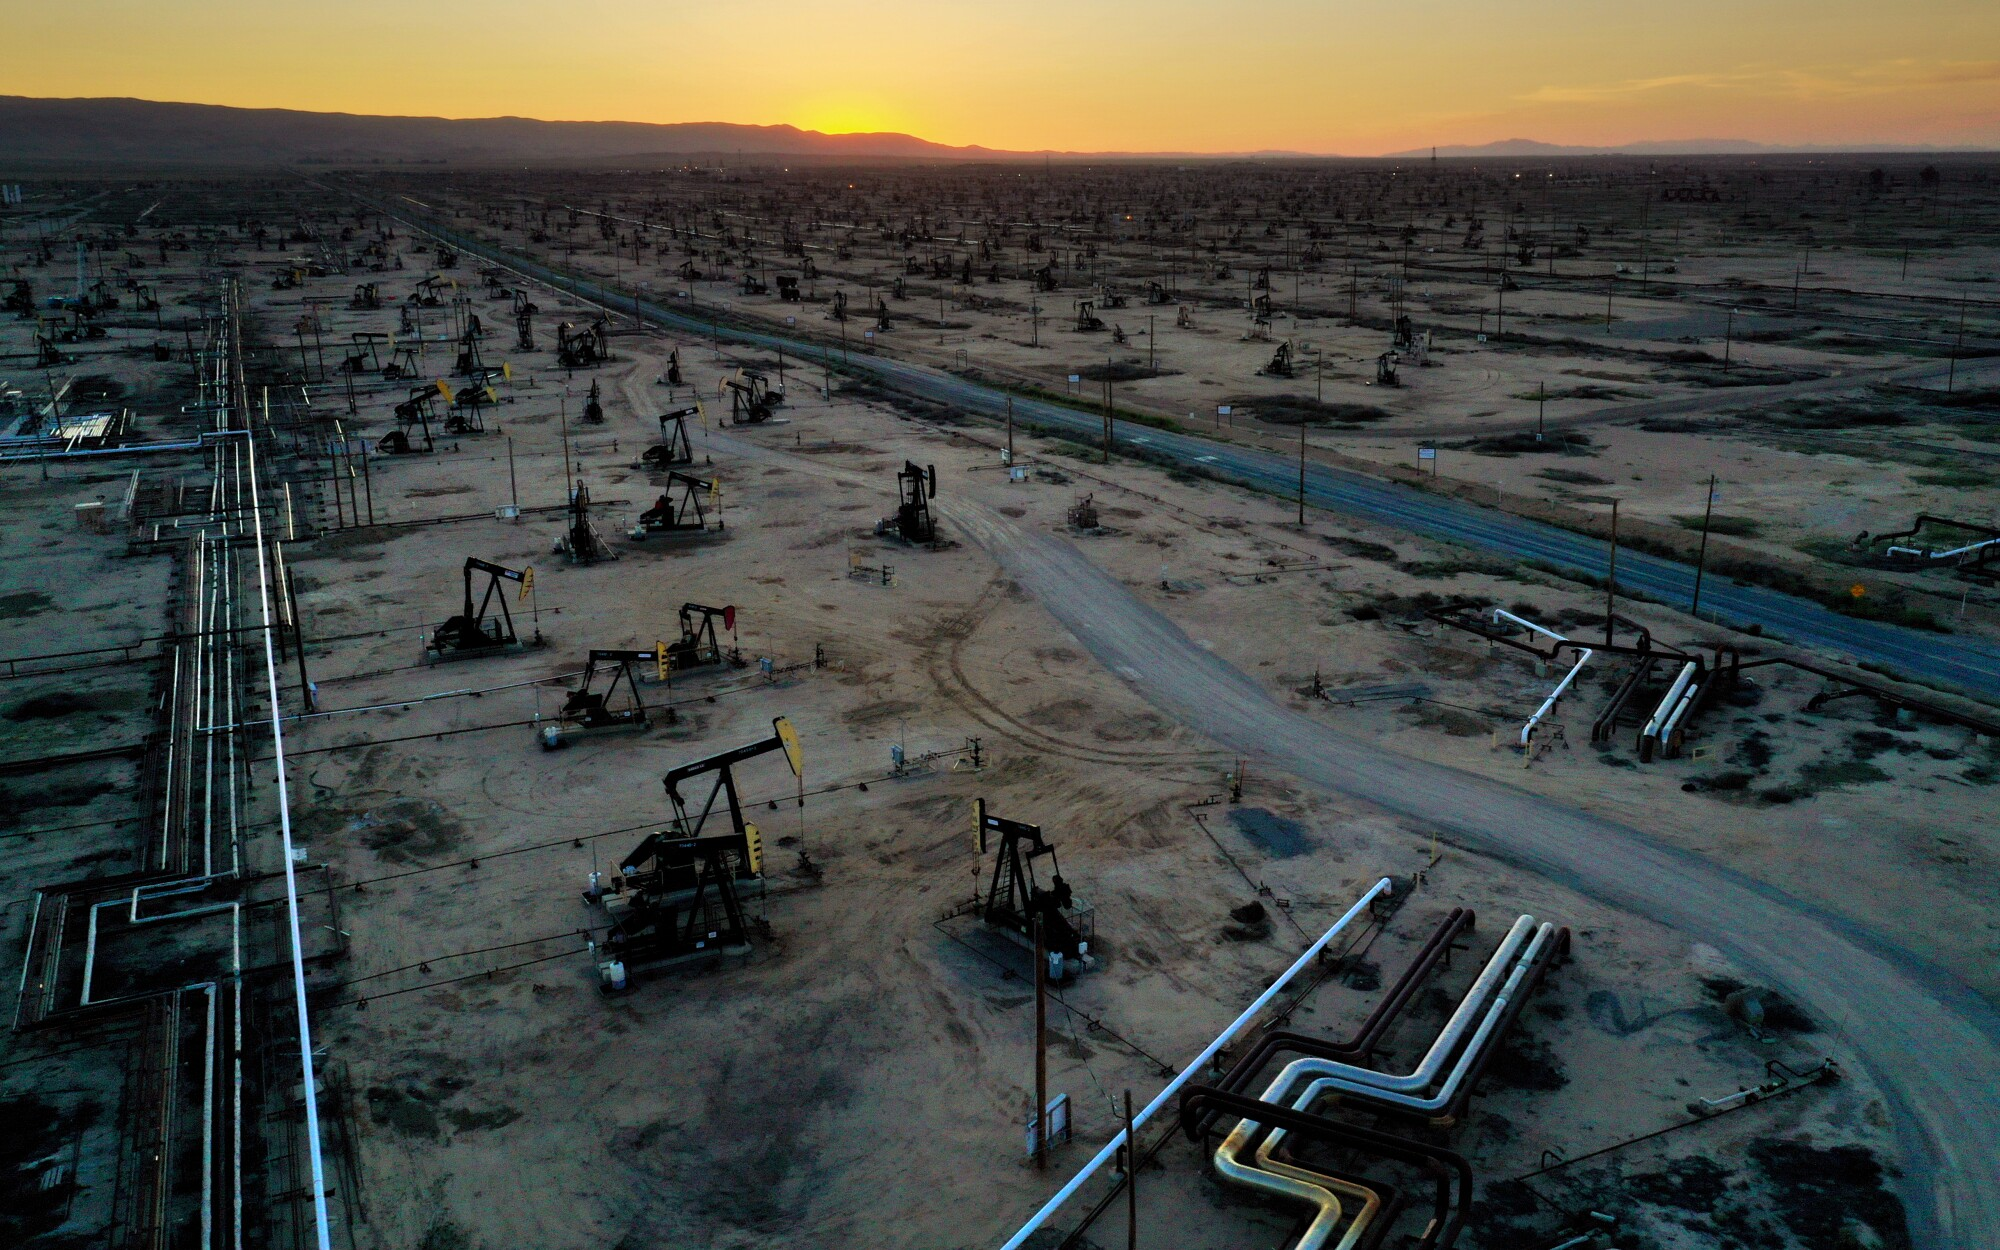 McKittrick oil field